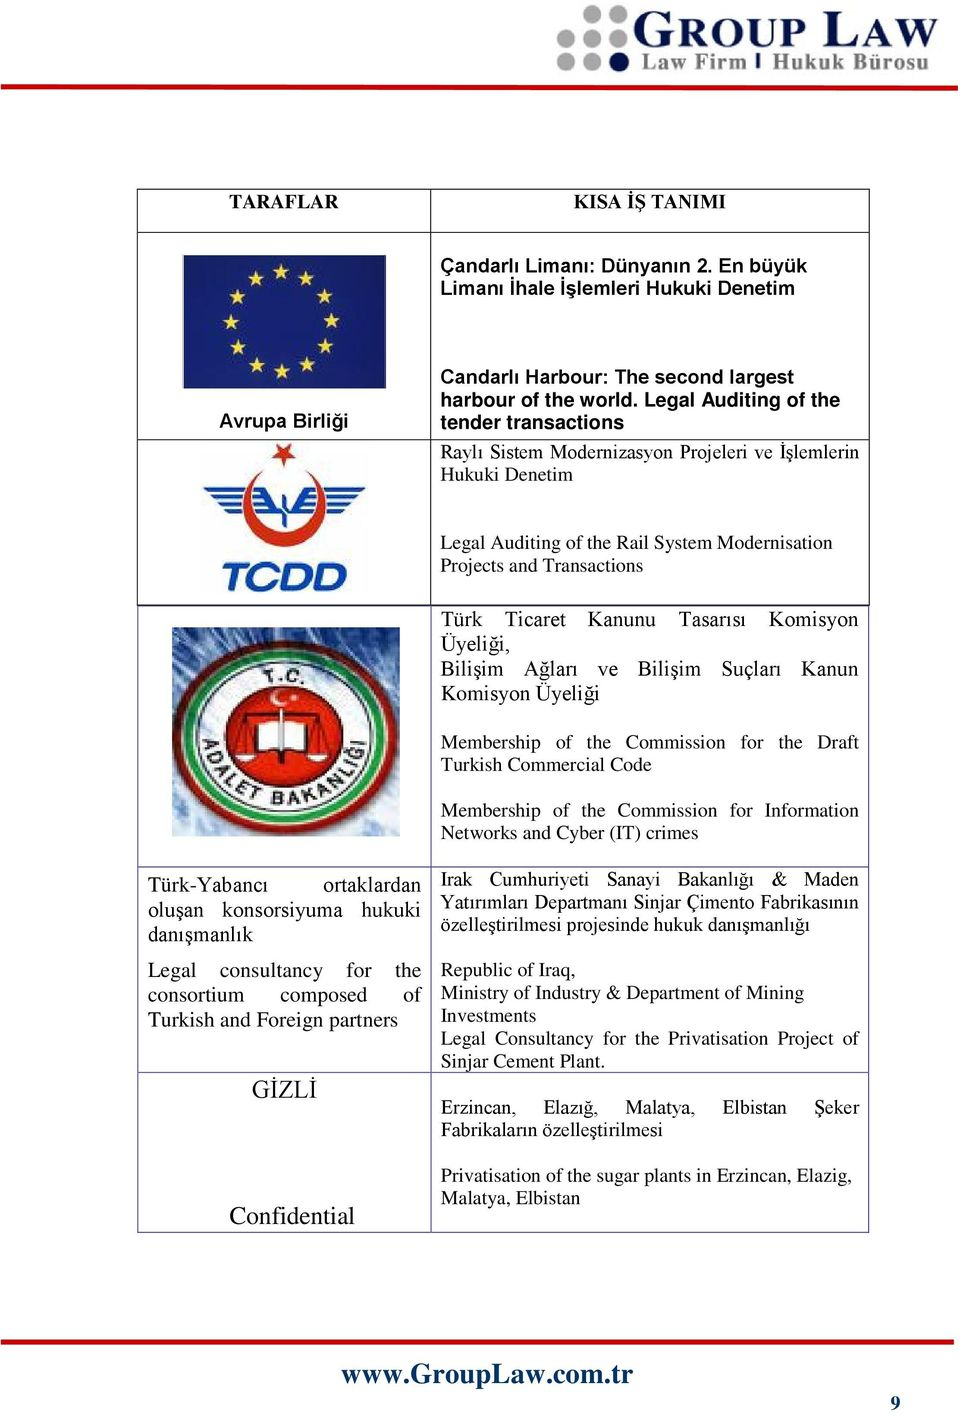 Kanunu Tasarısı Komisyon Üyeliği, Bilişim Ağları ve Bilişim Suçları Kanun Komisyon Üyeliği Membership of the Commission for the Draft Turkish Commercial Code Membership of the Commission for